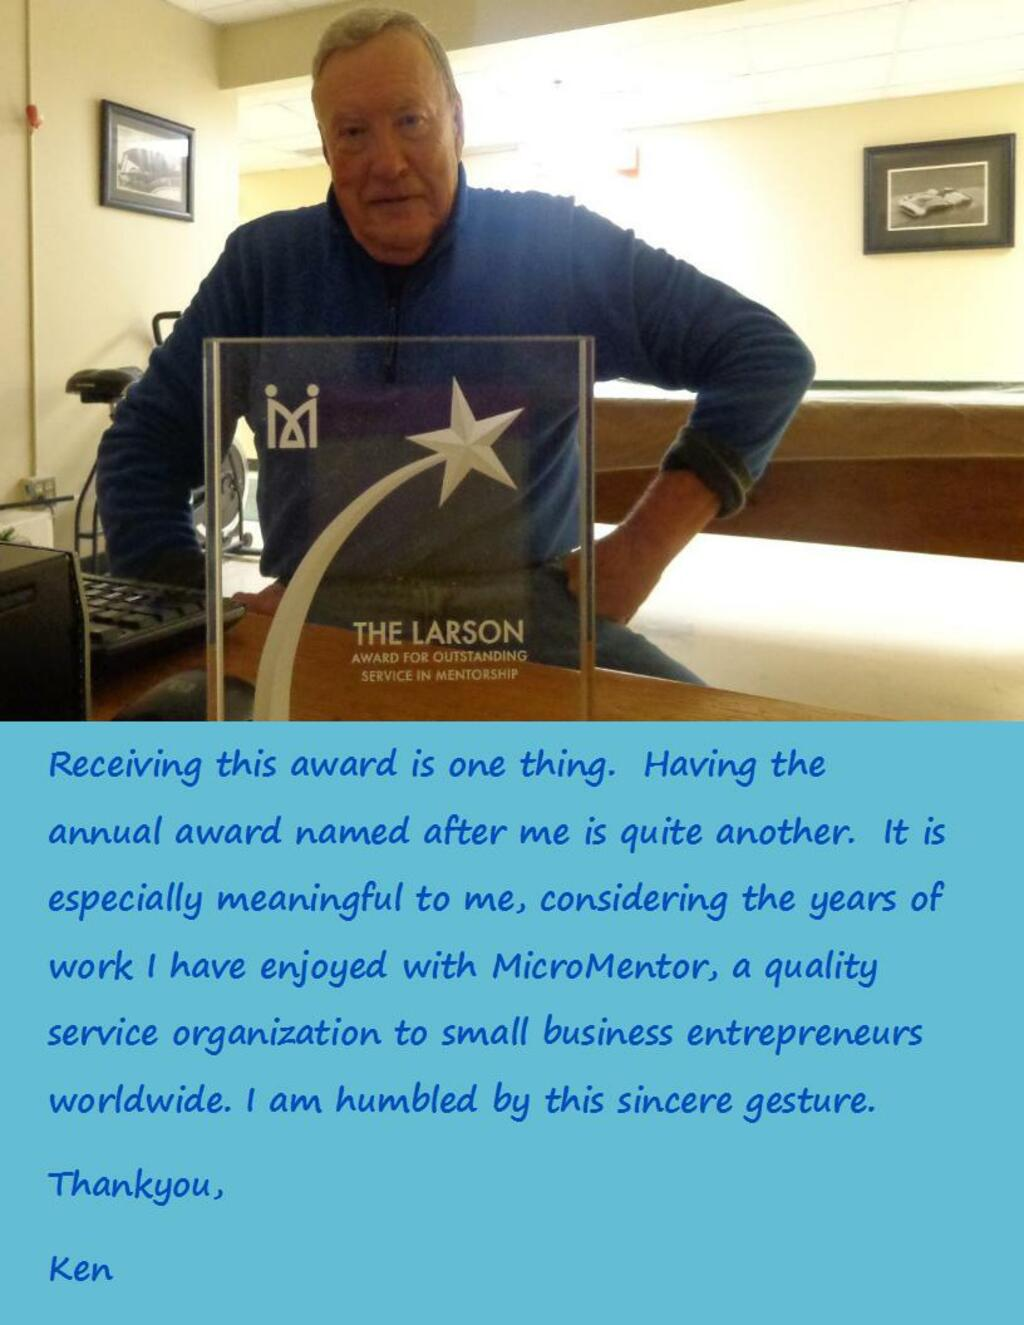 Receiving this honor is one thing, but having the annual awa... via Ken Larson